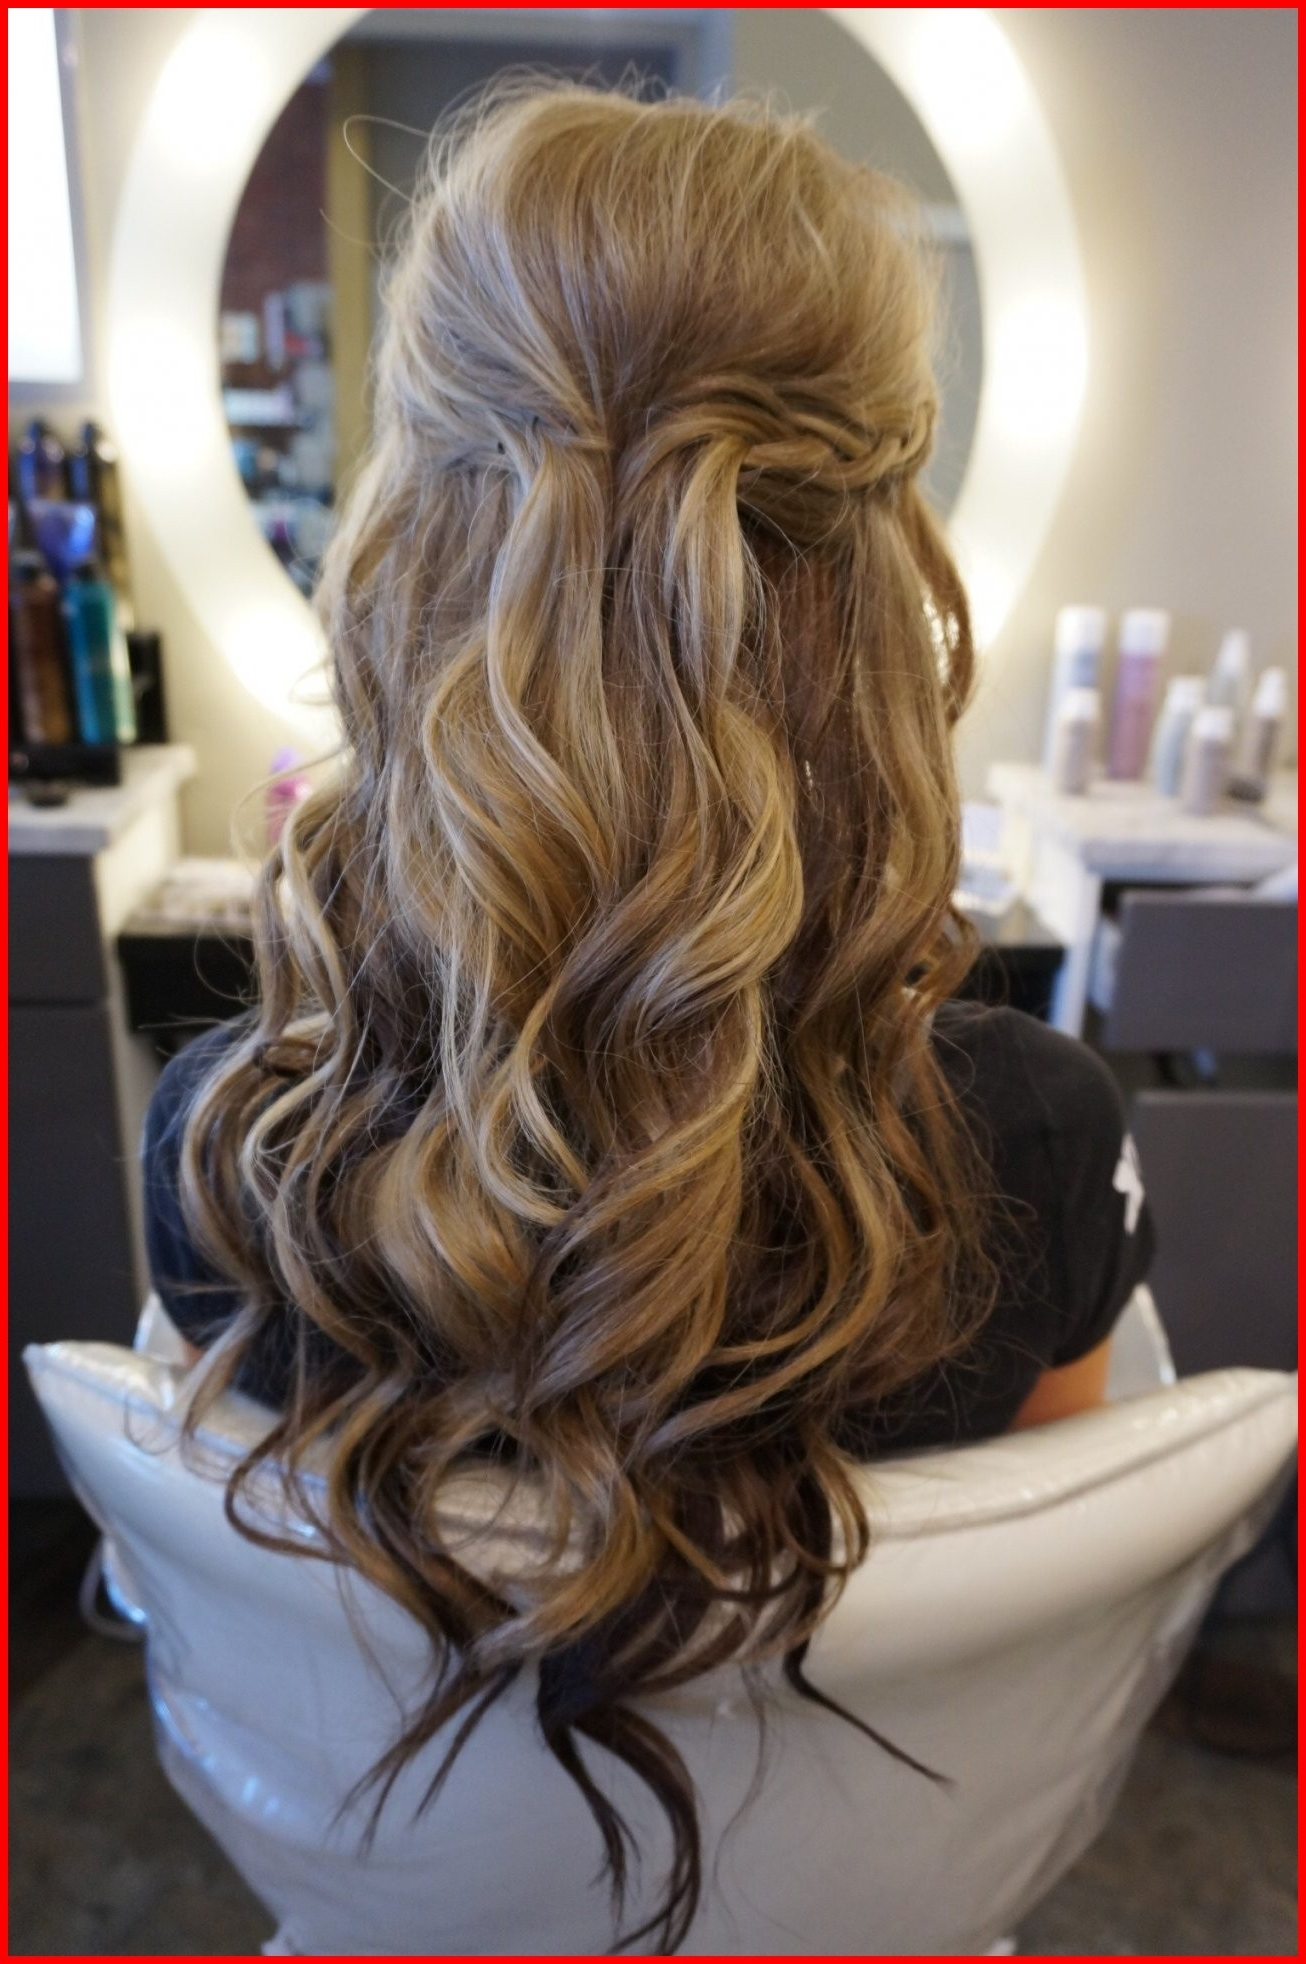 Wedding Hairstyles Curly Hair Half Up 22838 Short Wedding Hair Half In Most Up To Date Half Up Wedding Hairstyles Long Curly Hair (View 15 of 15)